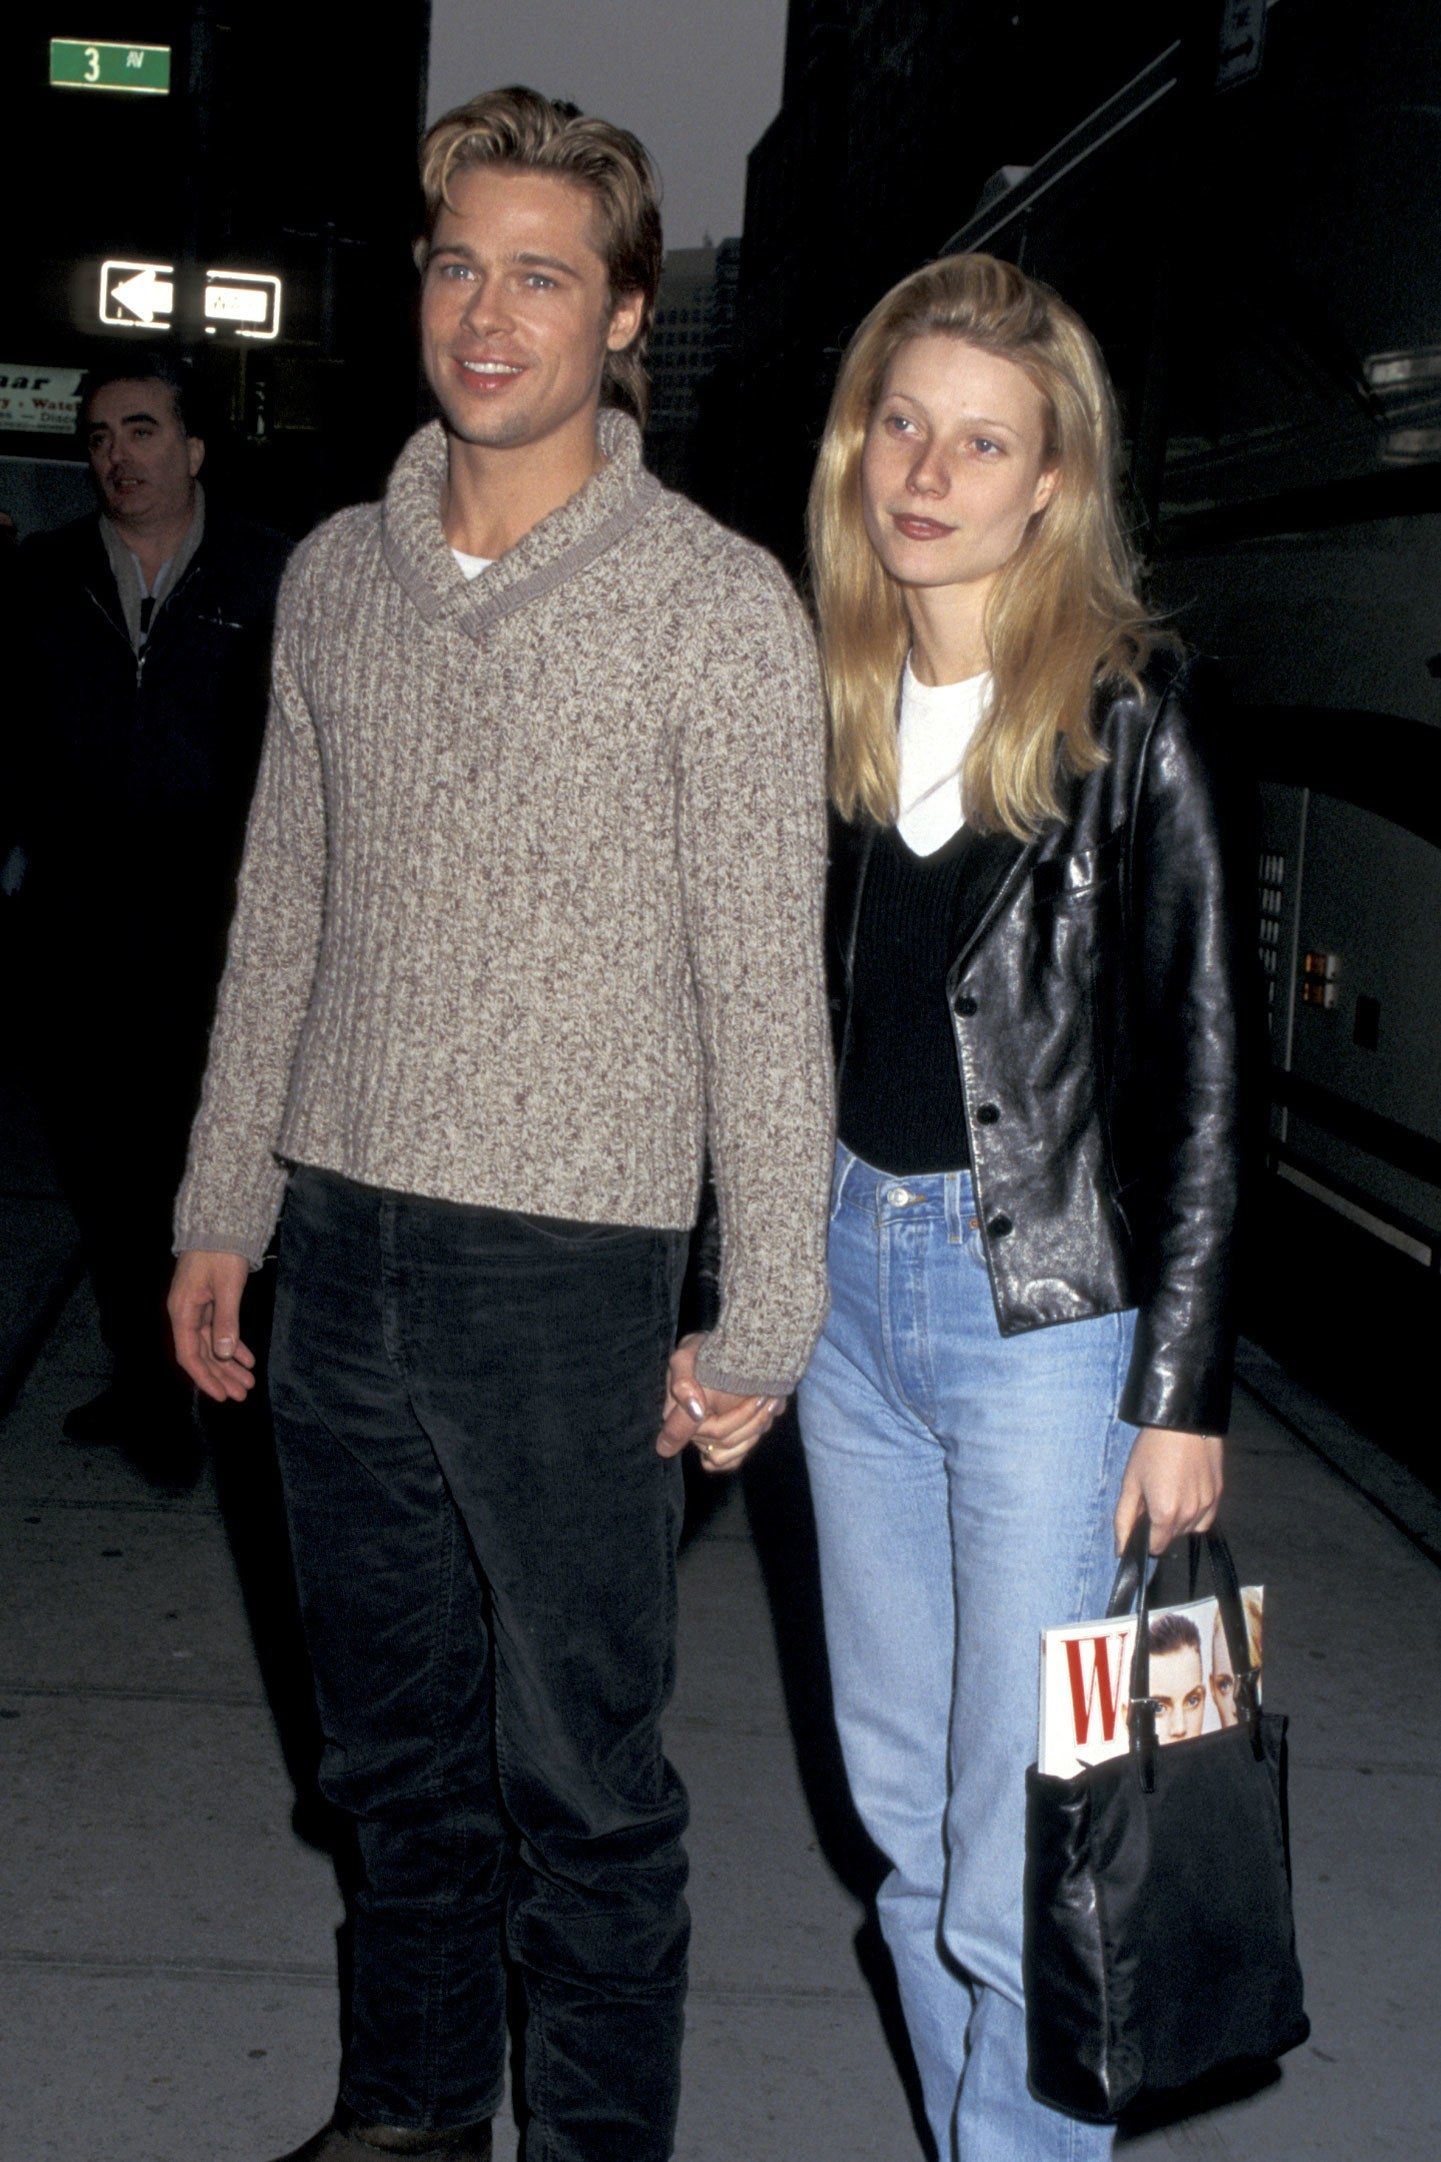 Gwyneth Paltrows 90s Wardrobe Couldnt Be More 2019 Gwyneth Paltrows 90s Wardrobe Couldnt Be More 2019 new pics